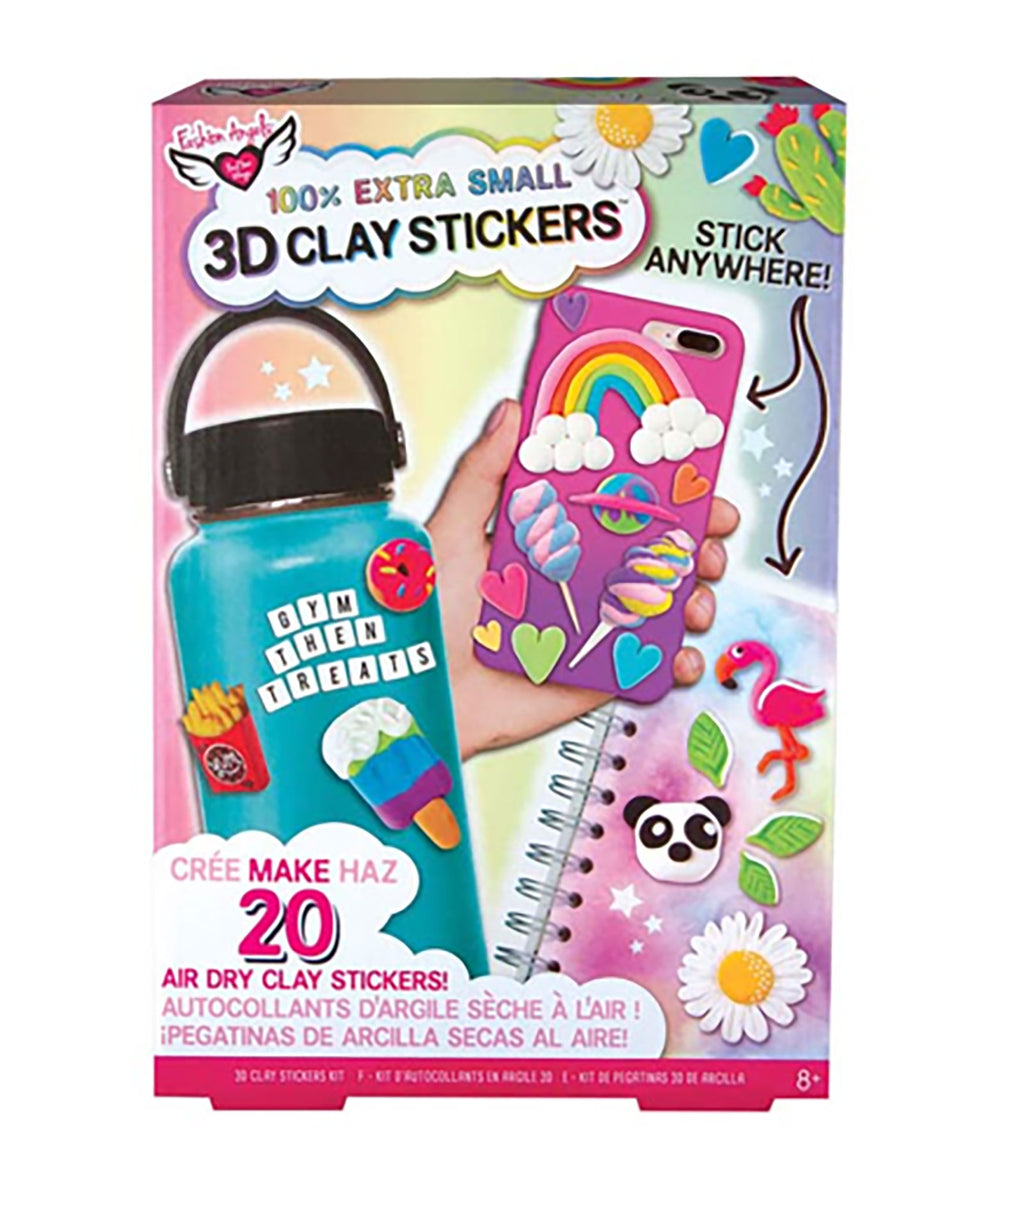 Fashion Angels 3D Mini Clay Sticker Kit